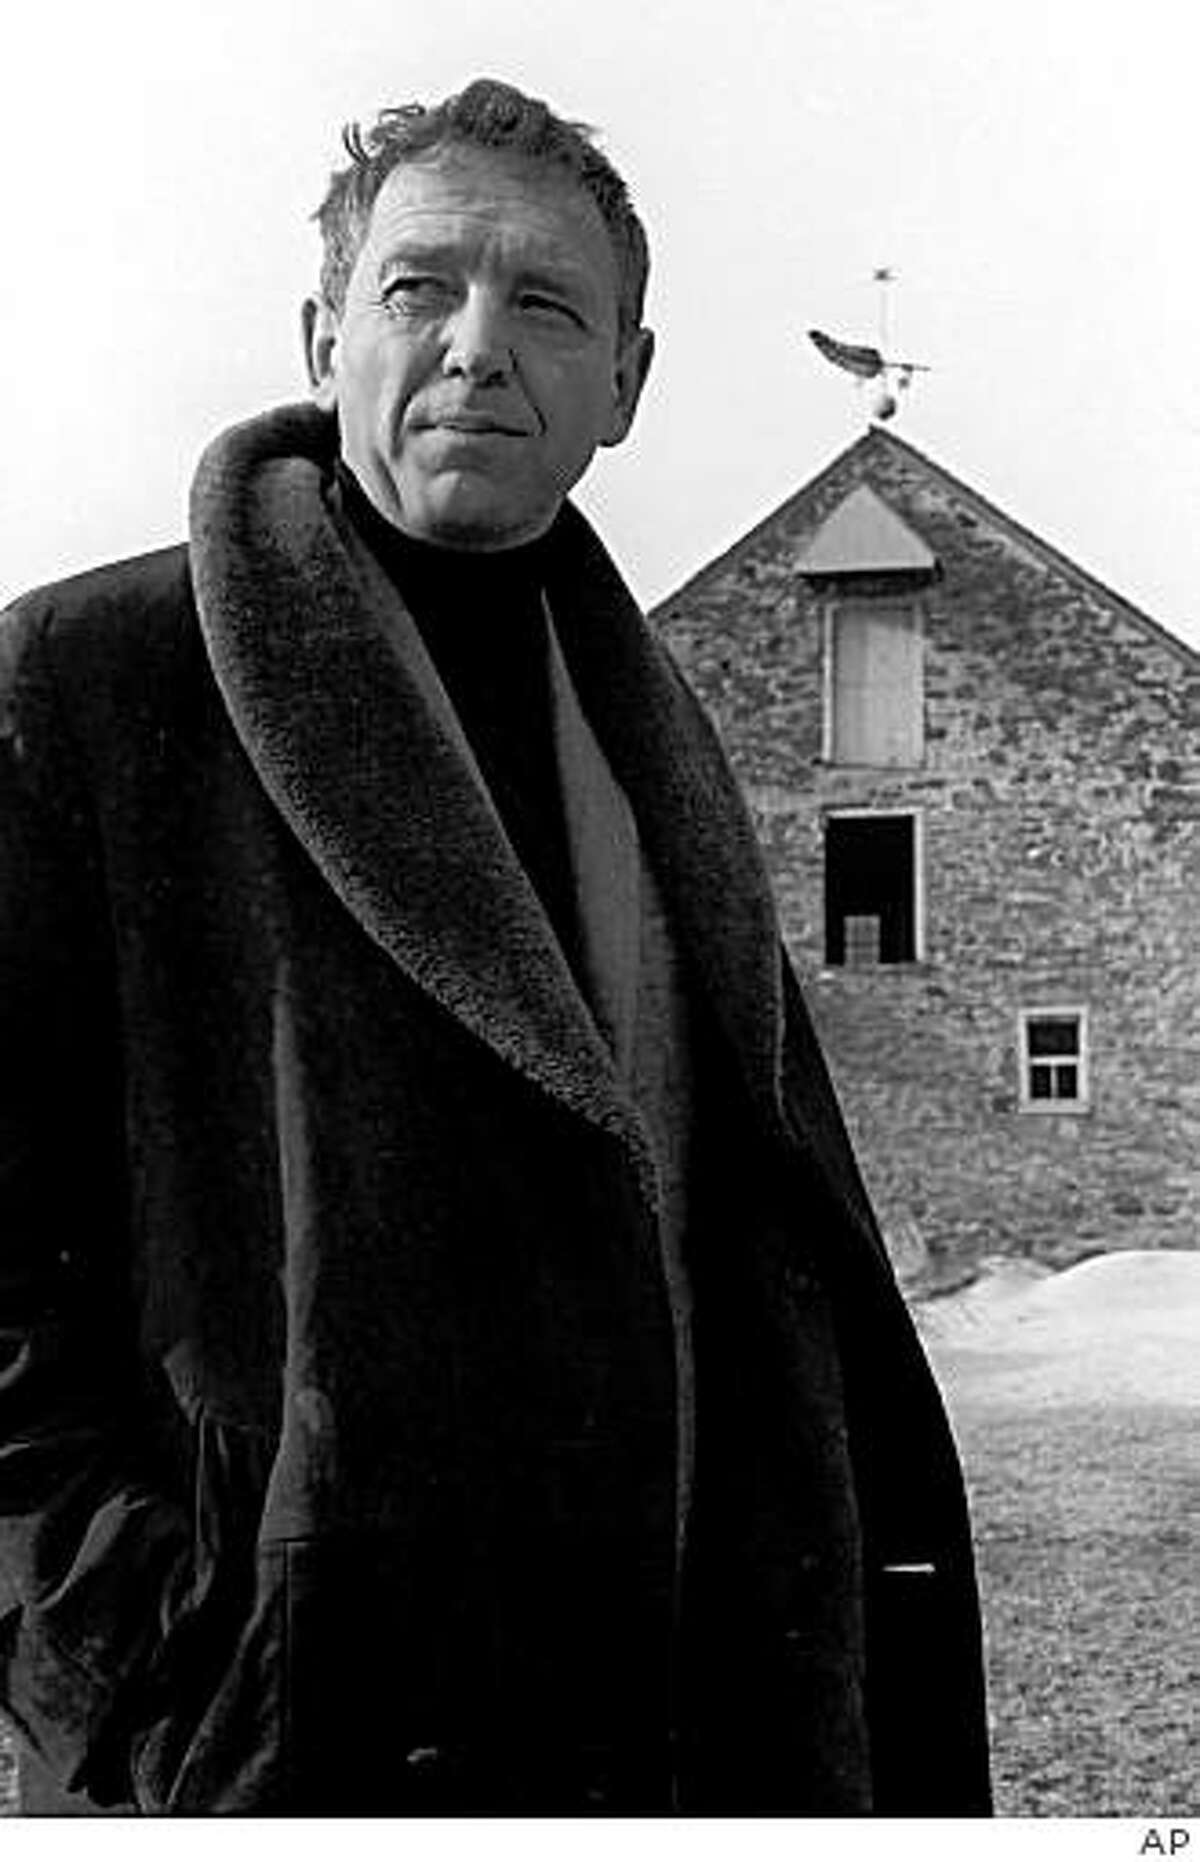 **ADDS ATTRIBUTION** ** FILE **In this Feb. 23, 1964, file photo, artist Andrew Wyeth stands in front of his farm in Chadds Ford, Pa. Wyeth has died at the age of 91 at his home outside Philadelphia according to Hillary Holland, a spokeswoman for the Brandywine River Museum. (AP Photo,File)